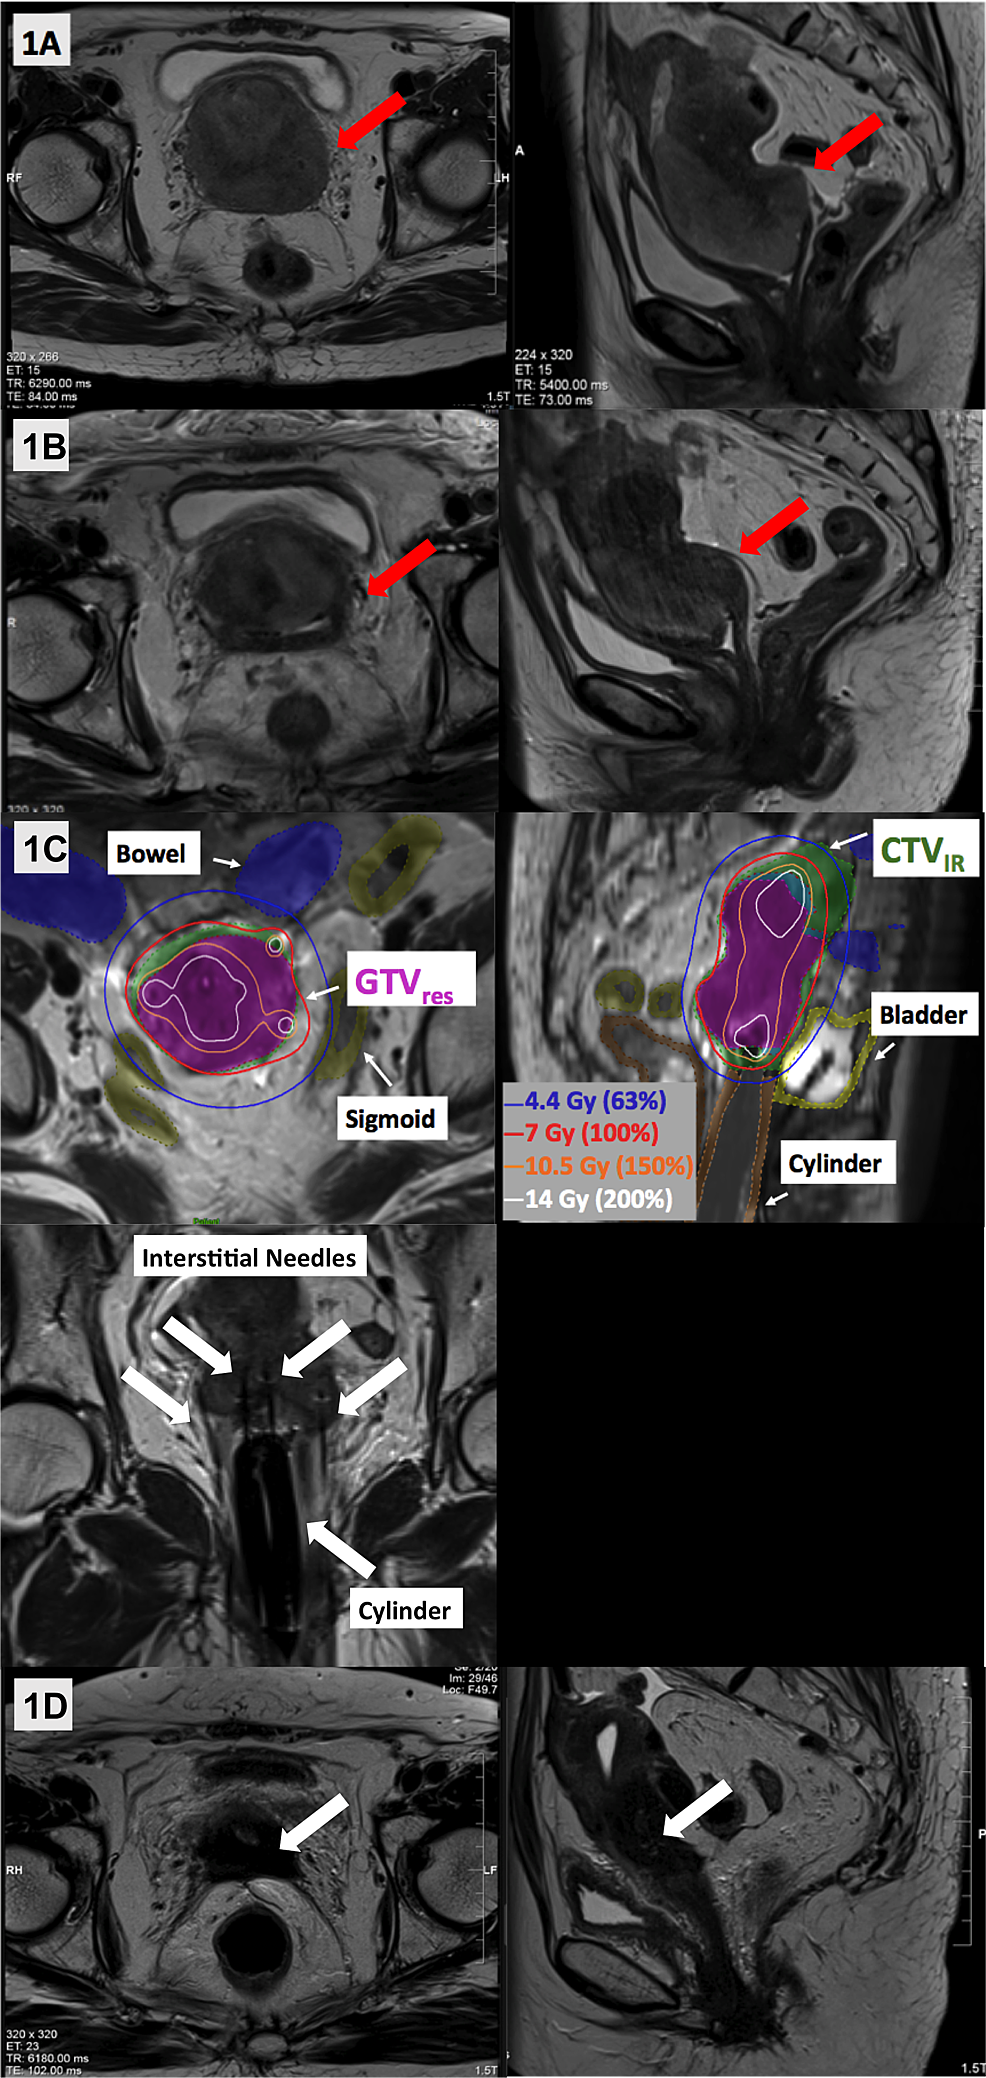 Representative-T2-weighted-axial-and-sagittal-images-acquired-across-Patient-A's-treatment-course.-(A)-Pre-treatment-MRI-showed-a-large-uterine-mass-involving-the-cervix,-vagina-and-left-parametria-(red-arrows).-(B)-MRI-following-external-beam-radiotherapy-showed-a-good-response-with-reduction-in-the-size-of-the-mass,-but-persistent-parametrial-involvement-rendering-it-still-unresectable-(red-arrows).-(C)-MR-guided-brachytherapy-was-delivered-using-a-template,-intra-vaginal-cylinder-and-12-interstitial-needles,-with-good-dosimetric-coverage-of-the-residual-GTV-(GTVres:-solid-magenta),-high-risk-CTV-(CTVHR:-overlaps-with-GTVres)-and-intermediate-risk-CTV-(CTVIR:-solid-green).-(D)-MRI-at-14-months-post-brachytherapy-showed-a-complete-response,-with-fibrosis-and-no-residual-tumor-(white-arrows).-